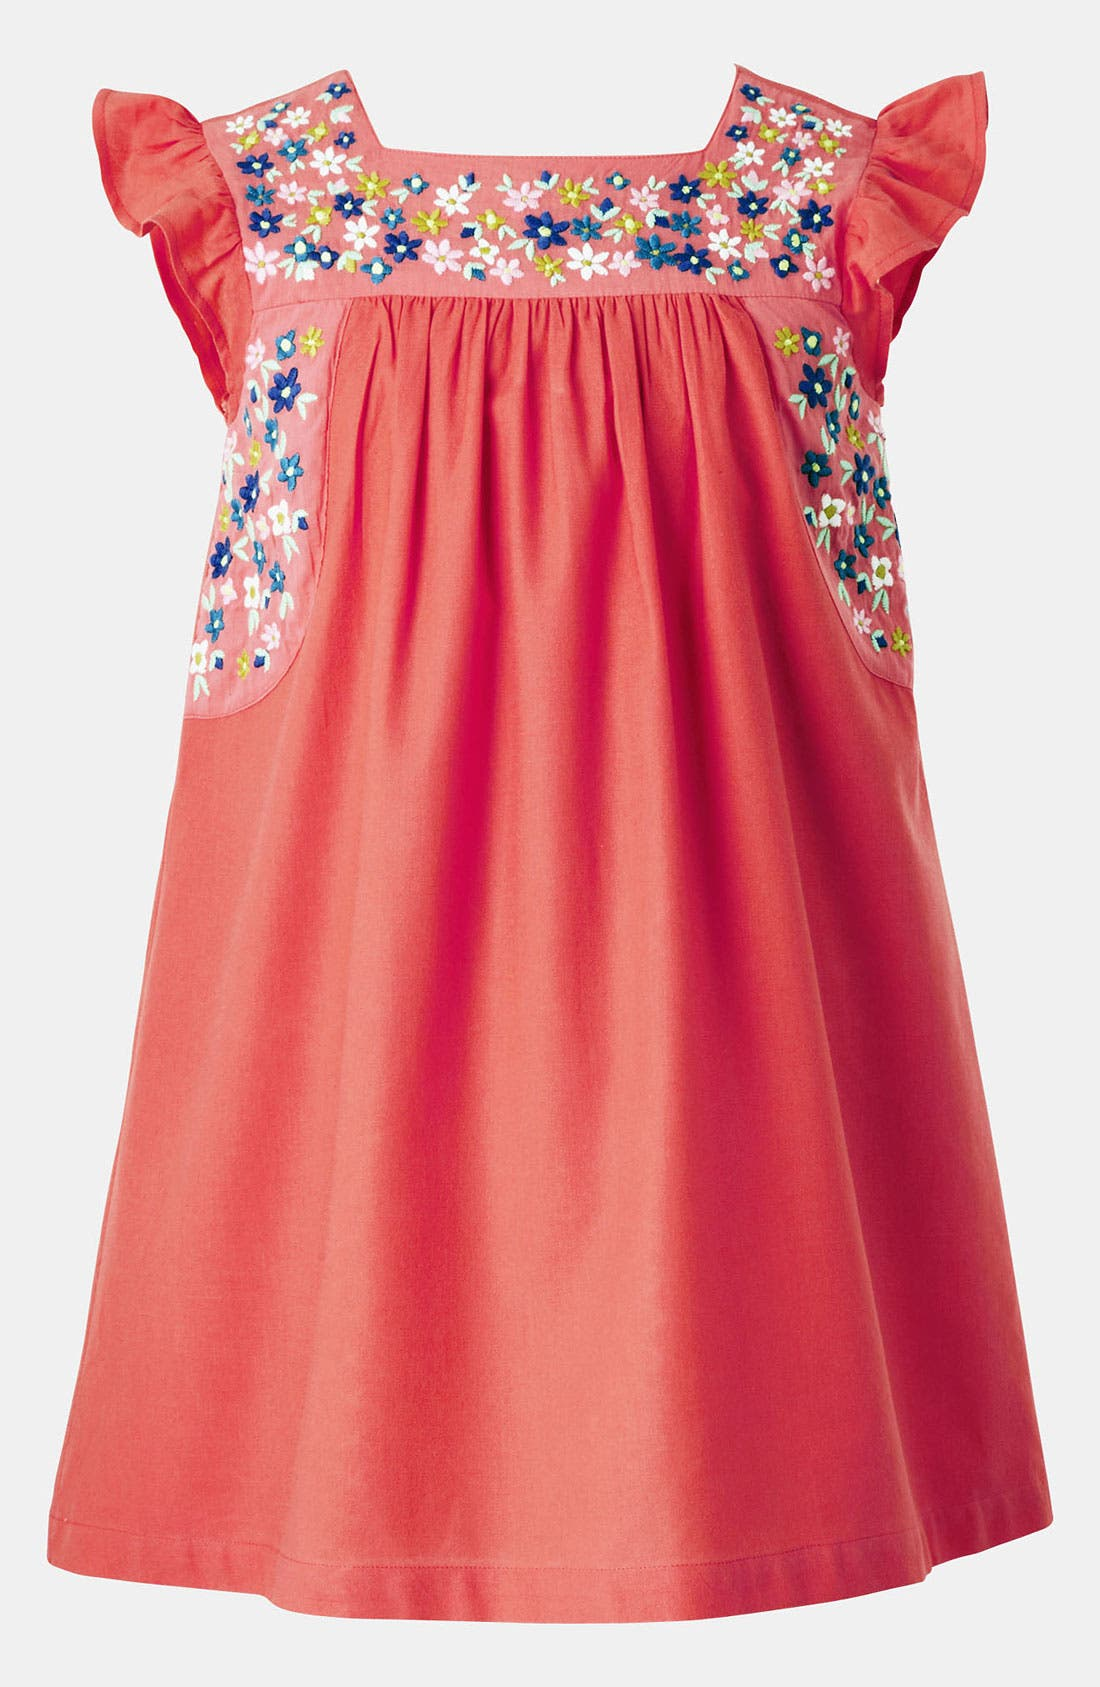 Main Image - Mini Boden Embroidered Dress (Big Girls)